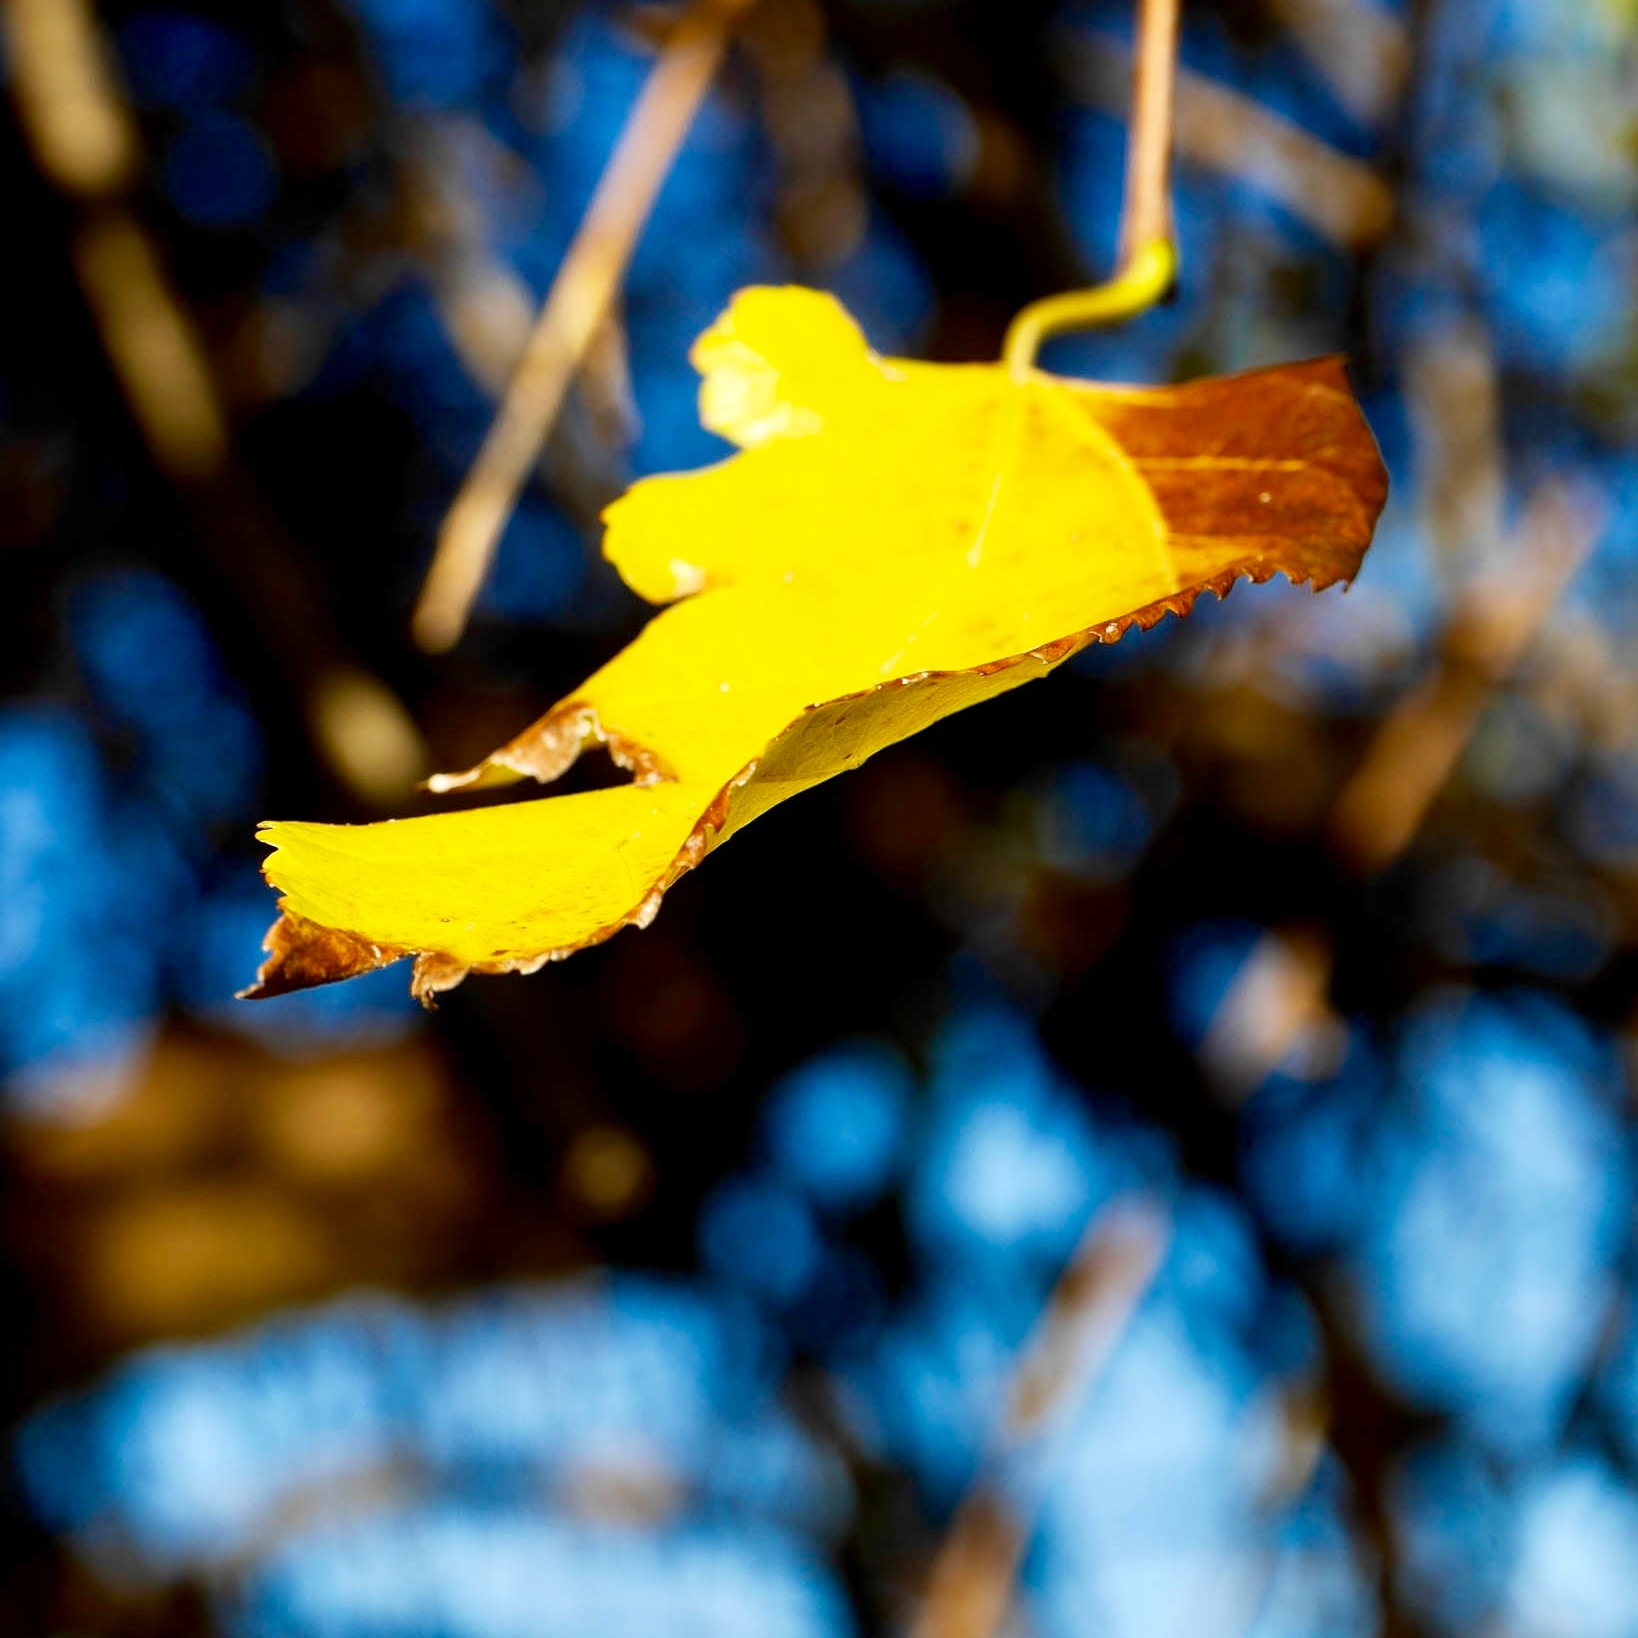 Autumn leaf hanging off the tree